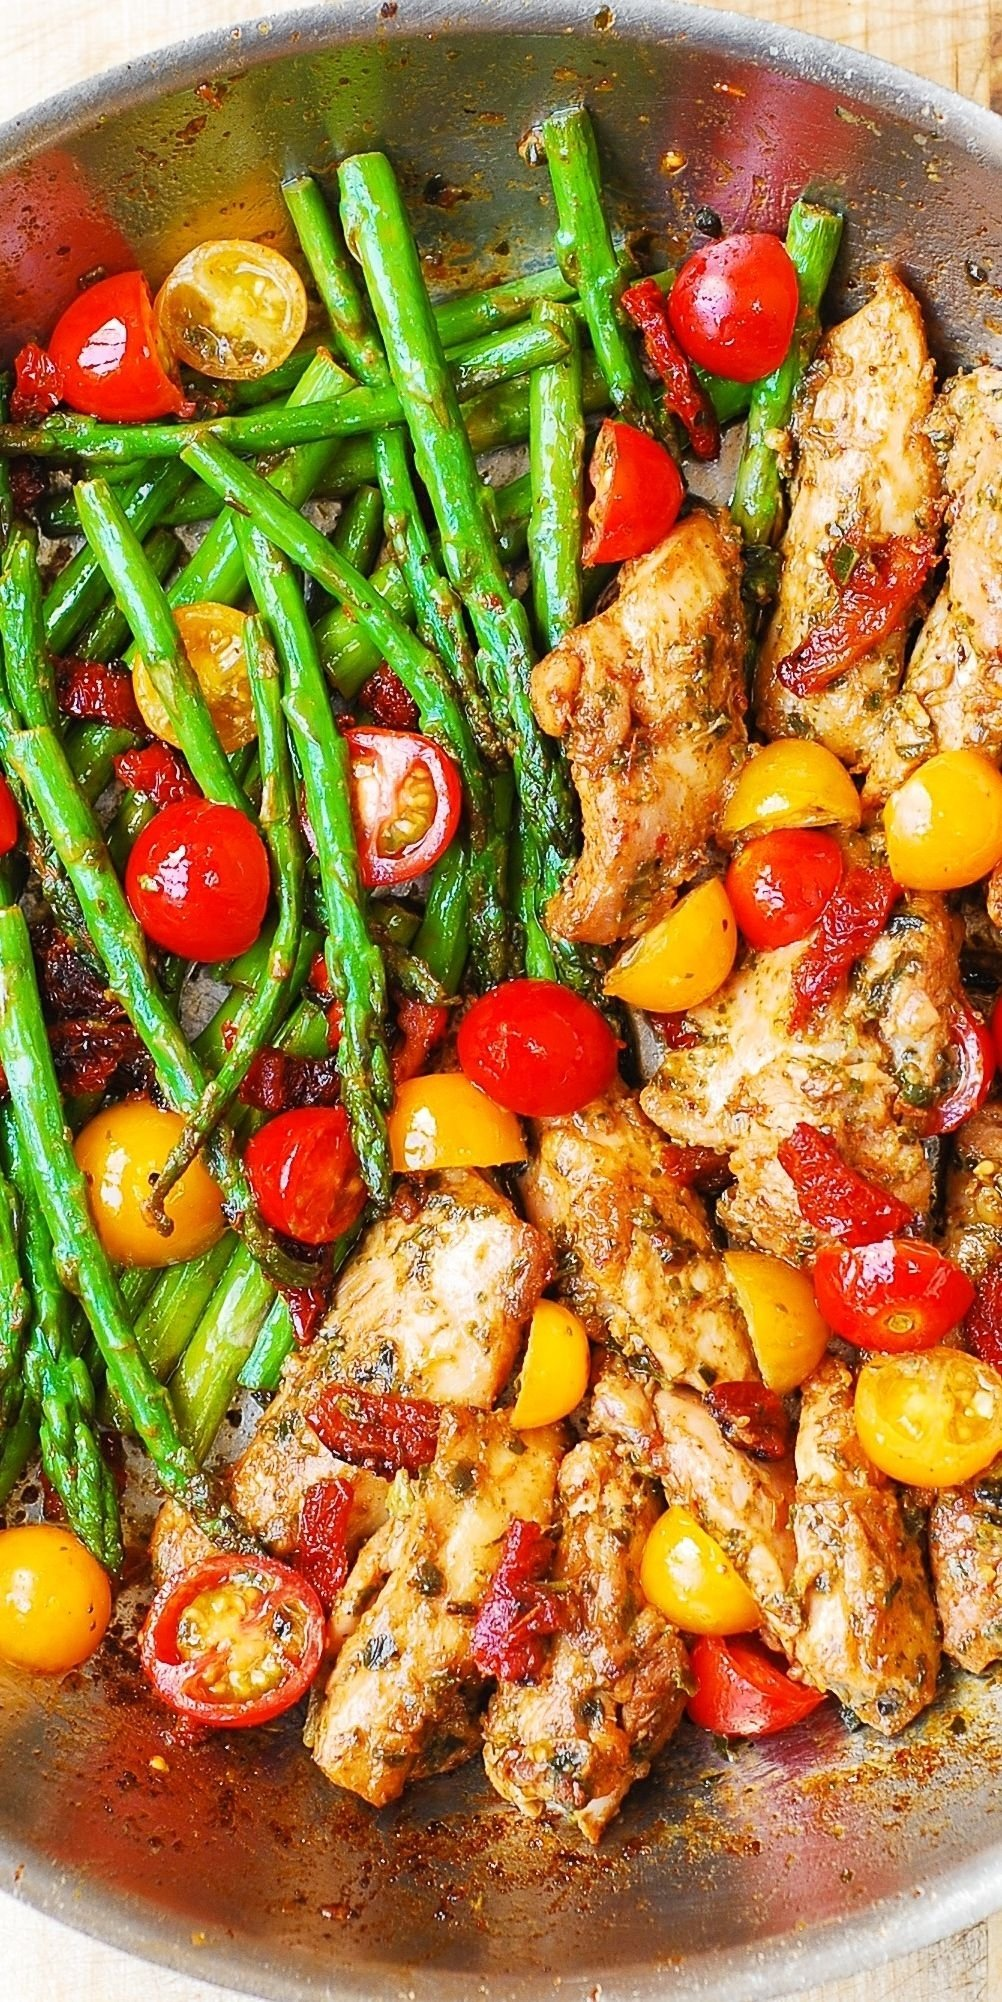 10 Attractive Healthy Dinner Ideas With Chicken quick and simple healthy dinner for any day healthy foods 3 2020